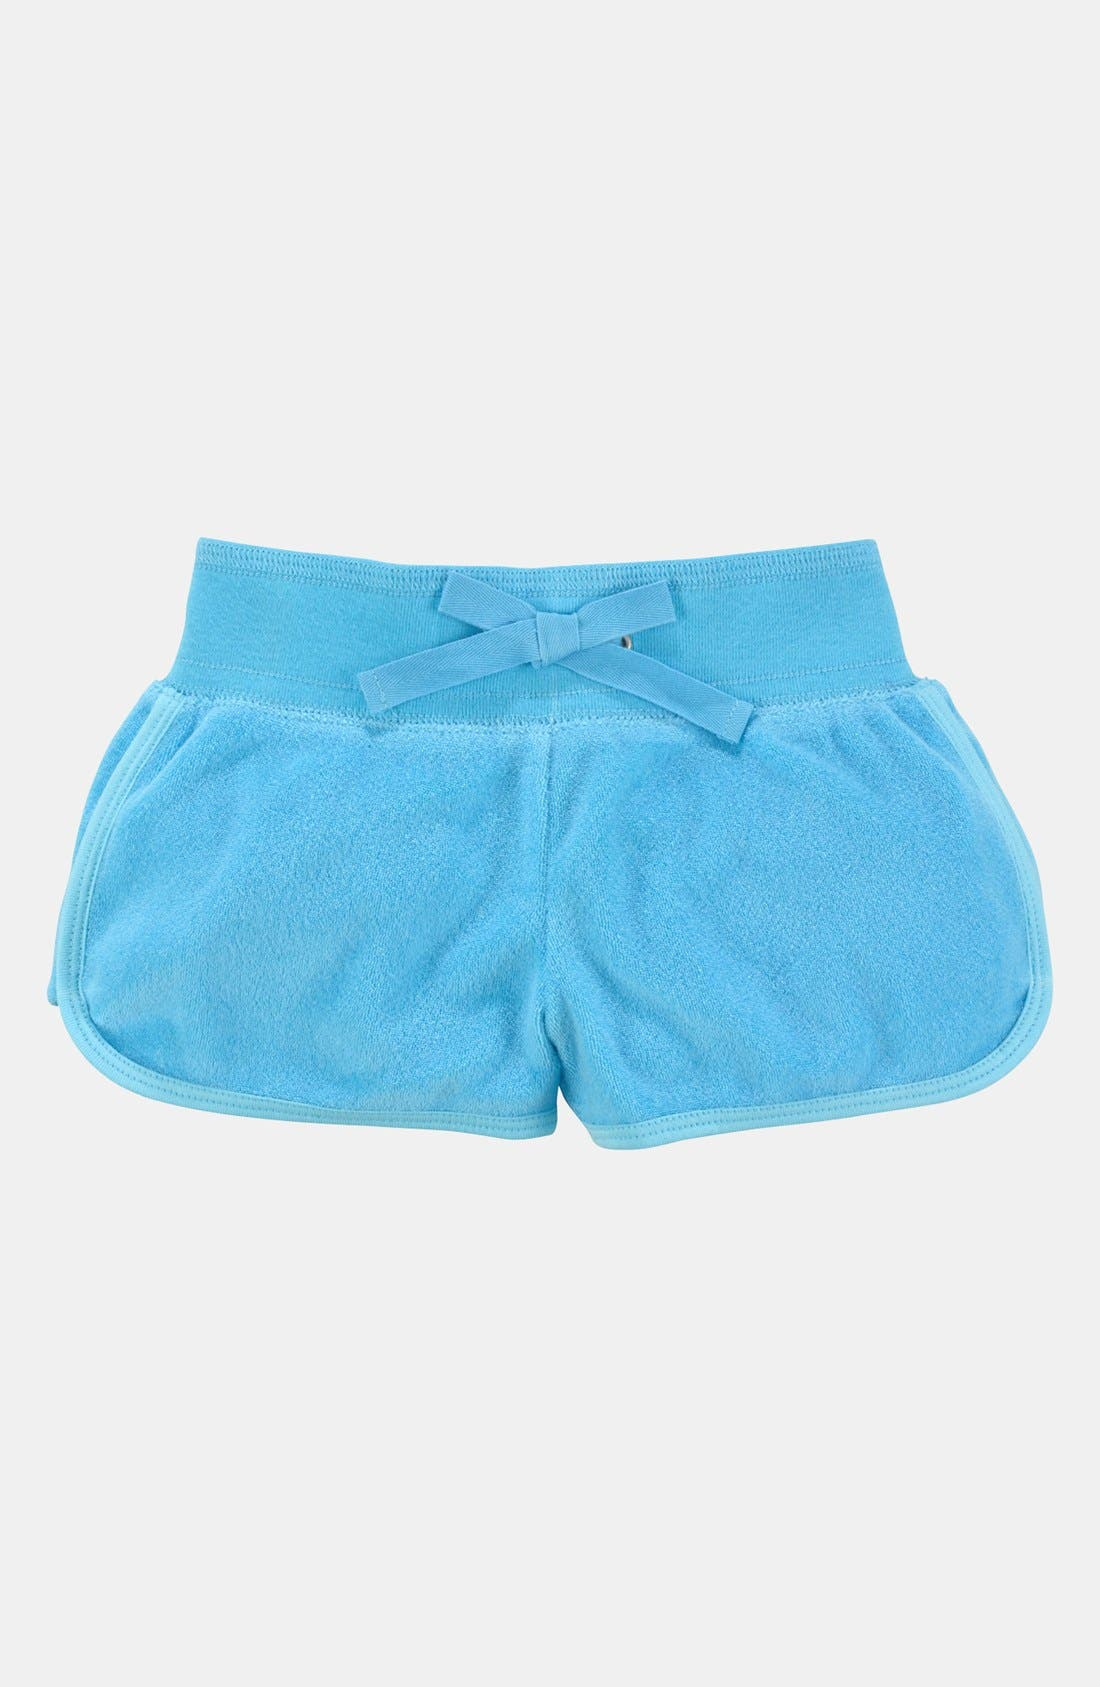 Alternate Image 1 Selected - Ralph Lauren Terry Cloth Shorts (Toddler)